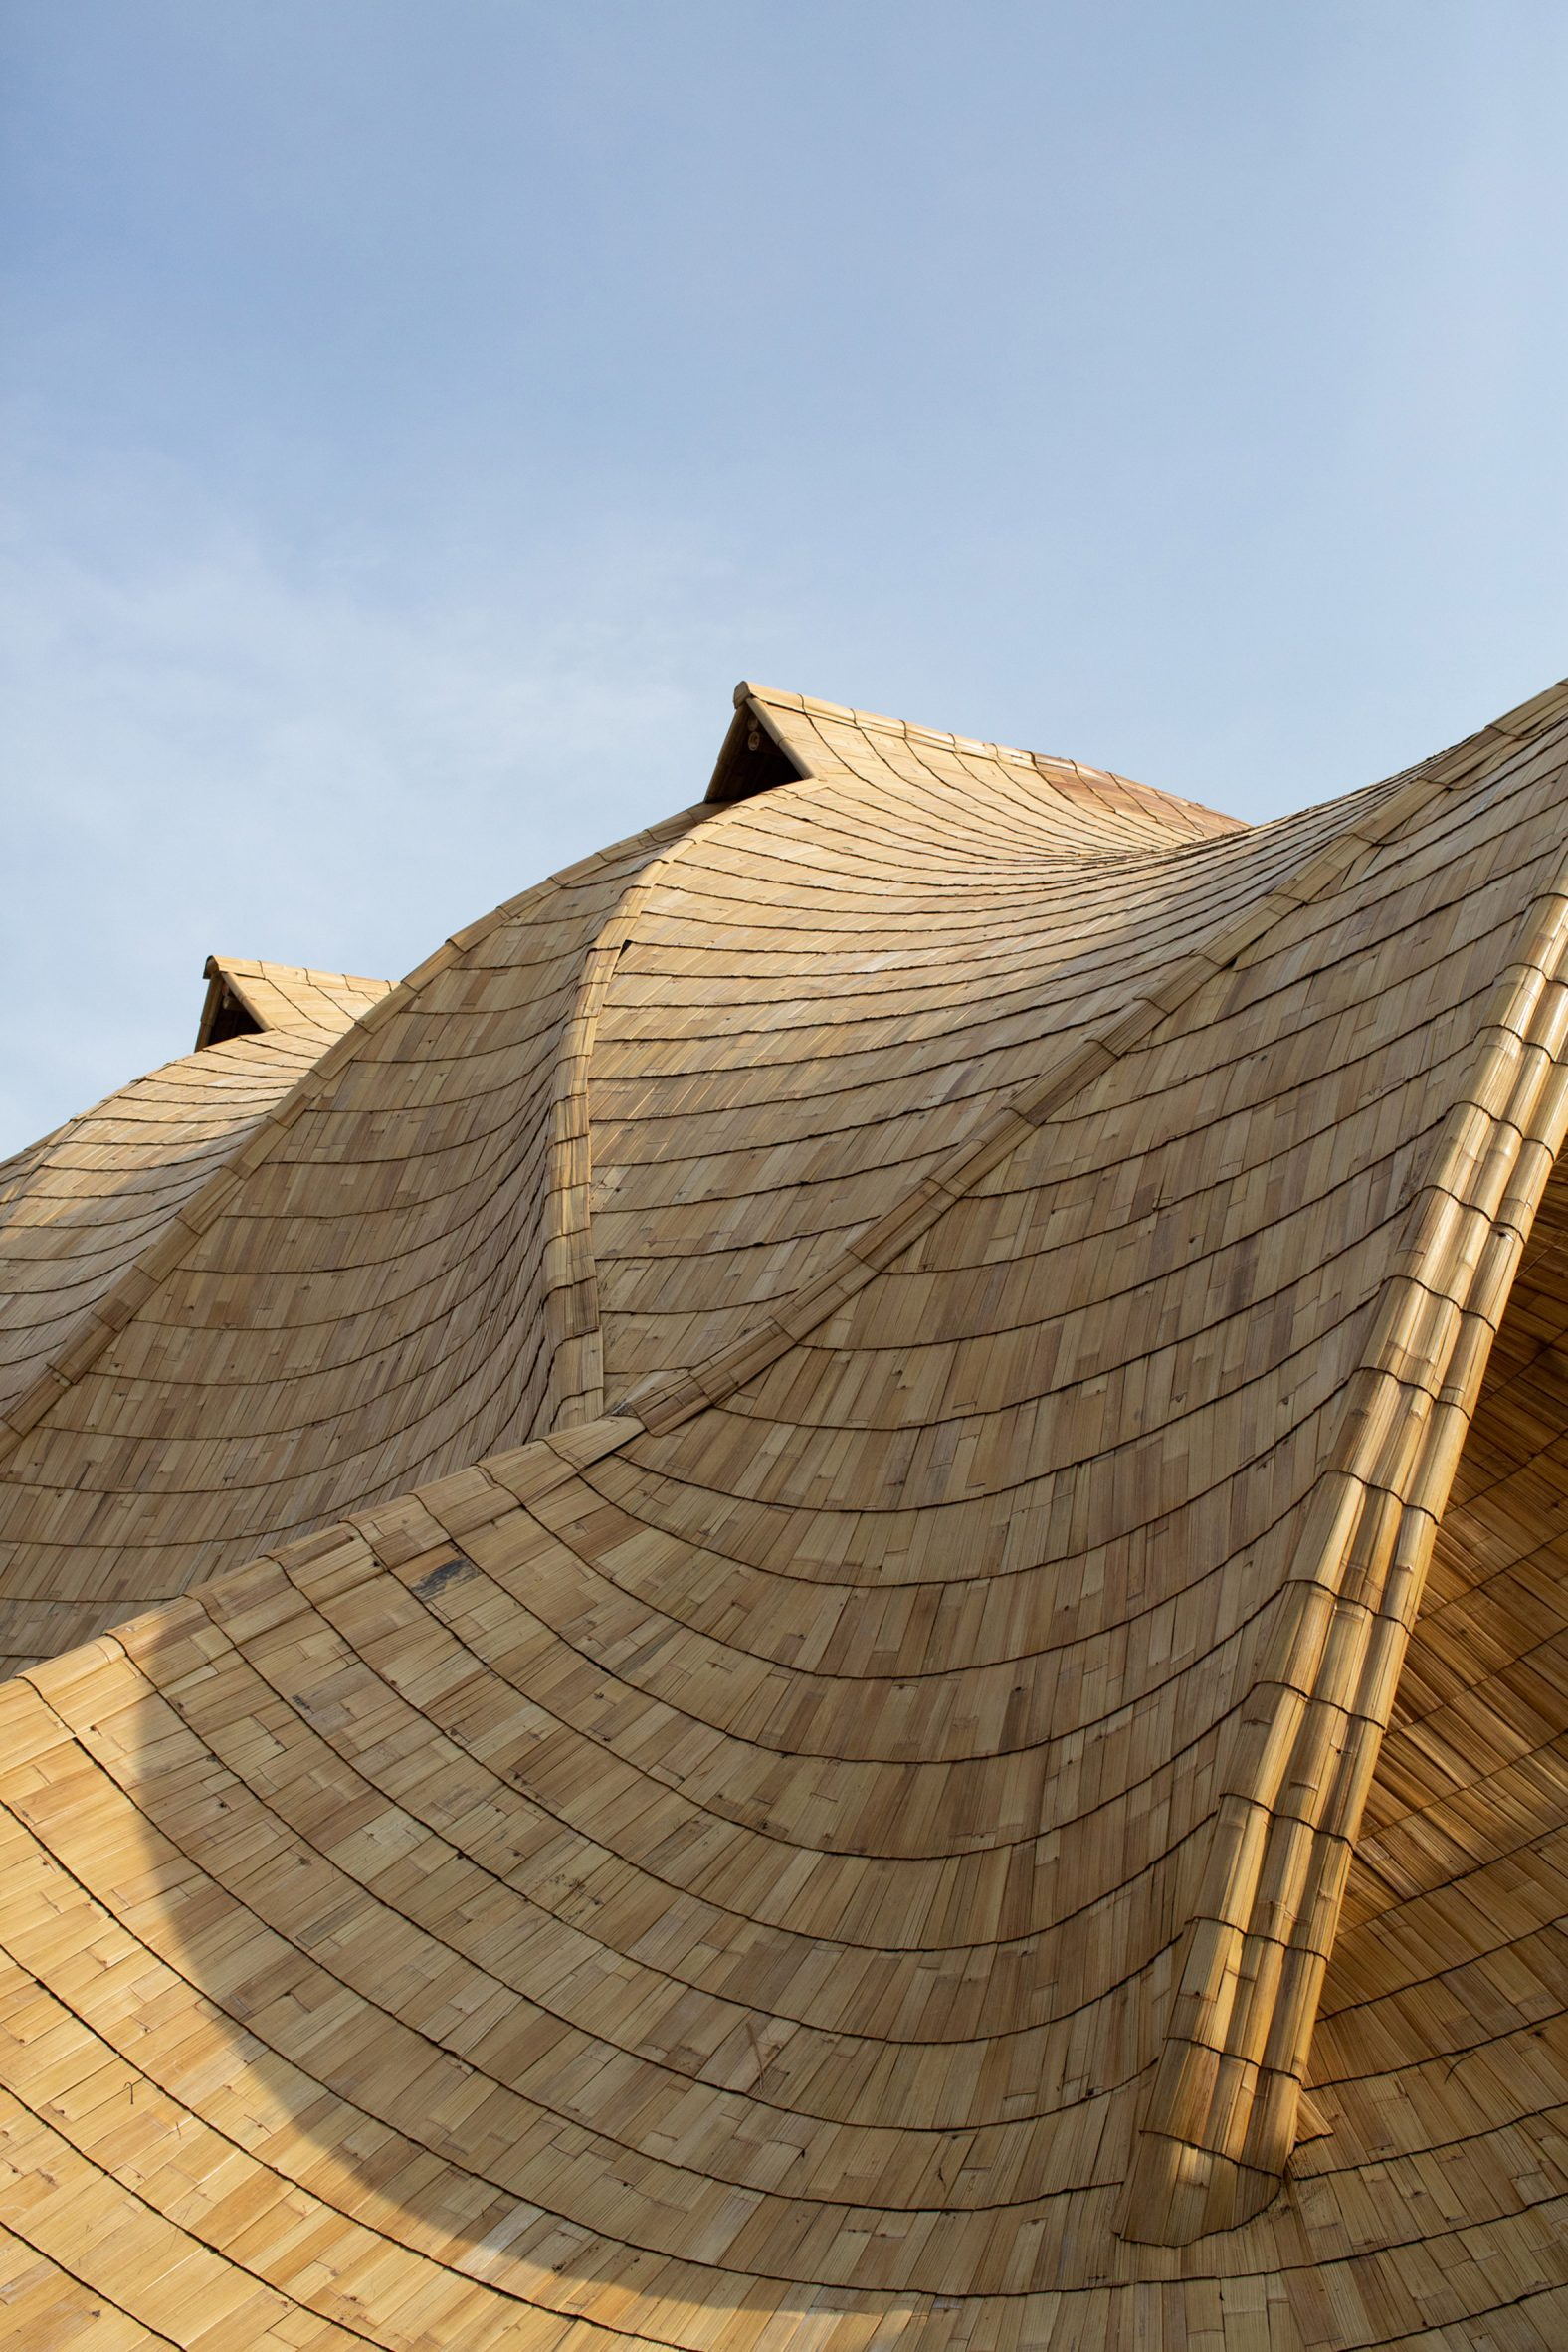 The Ark was constructed using bamboo